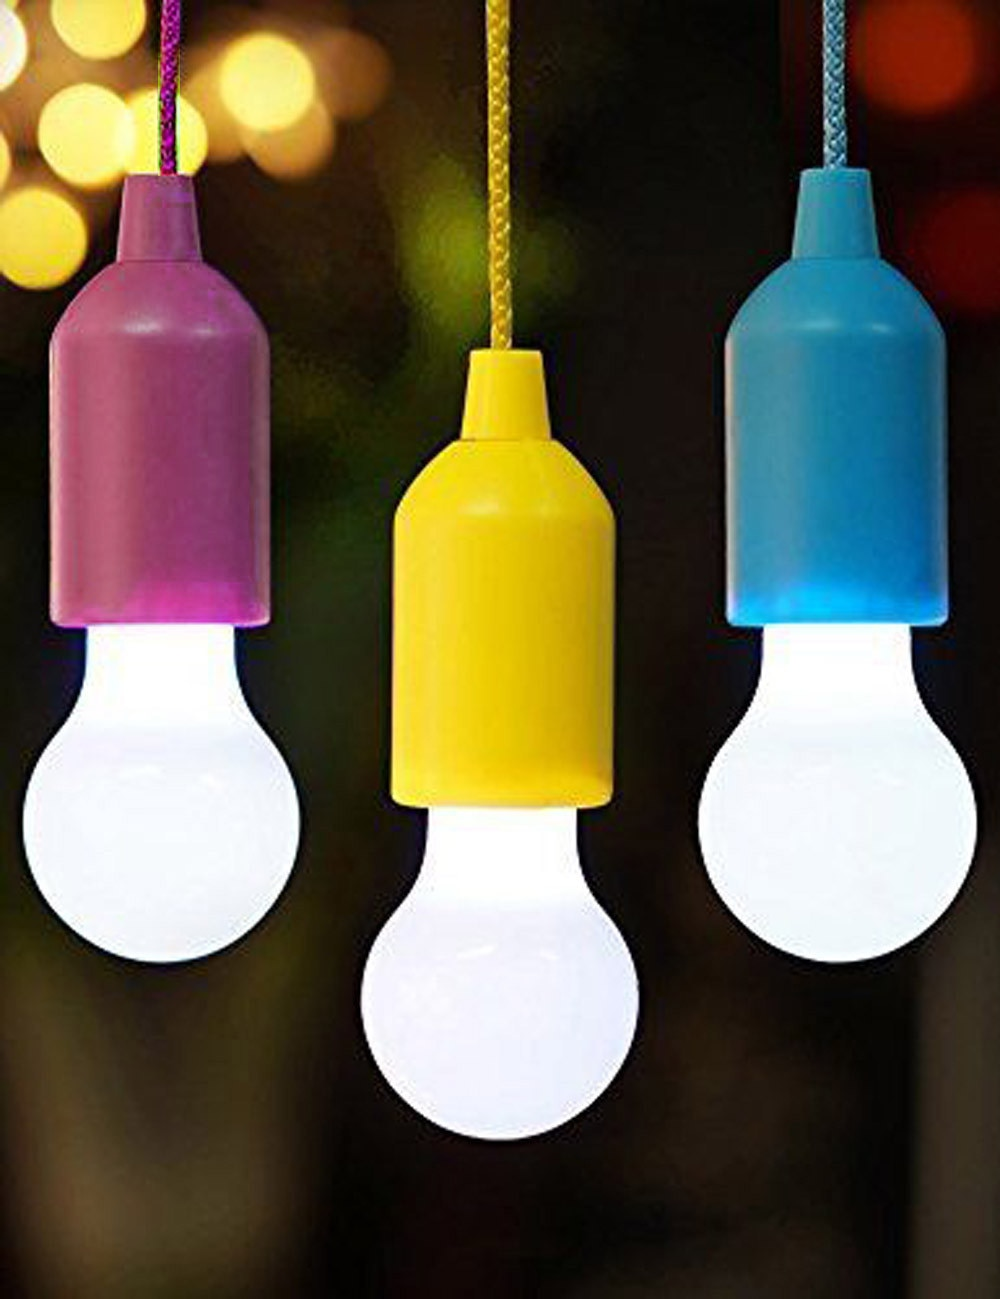 Portable Outdoor Hanging Tent Camping Light Night Lights Powered By 3*AAA Batterynight Light LED Bulb Lamp Lanterns